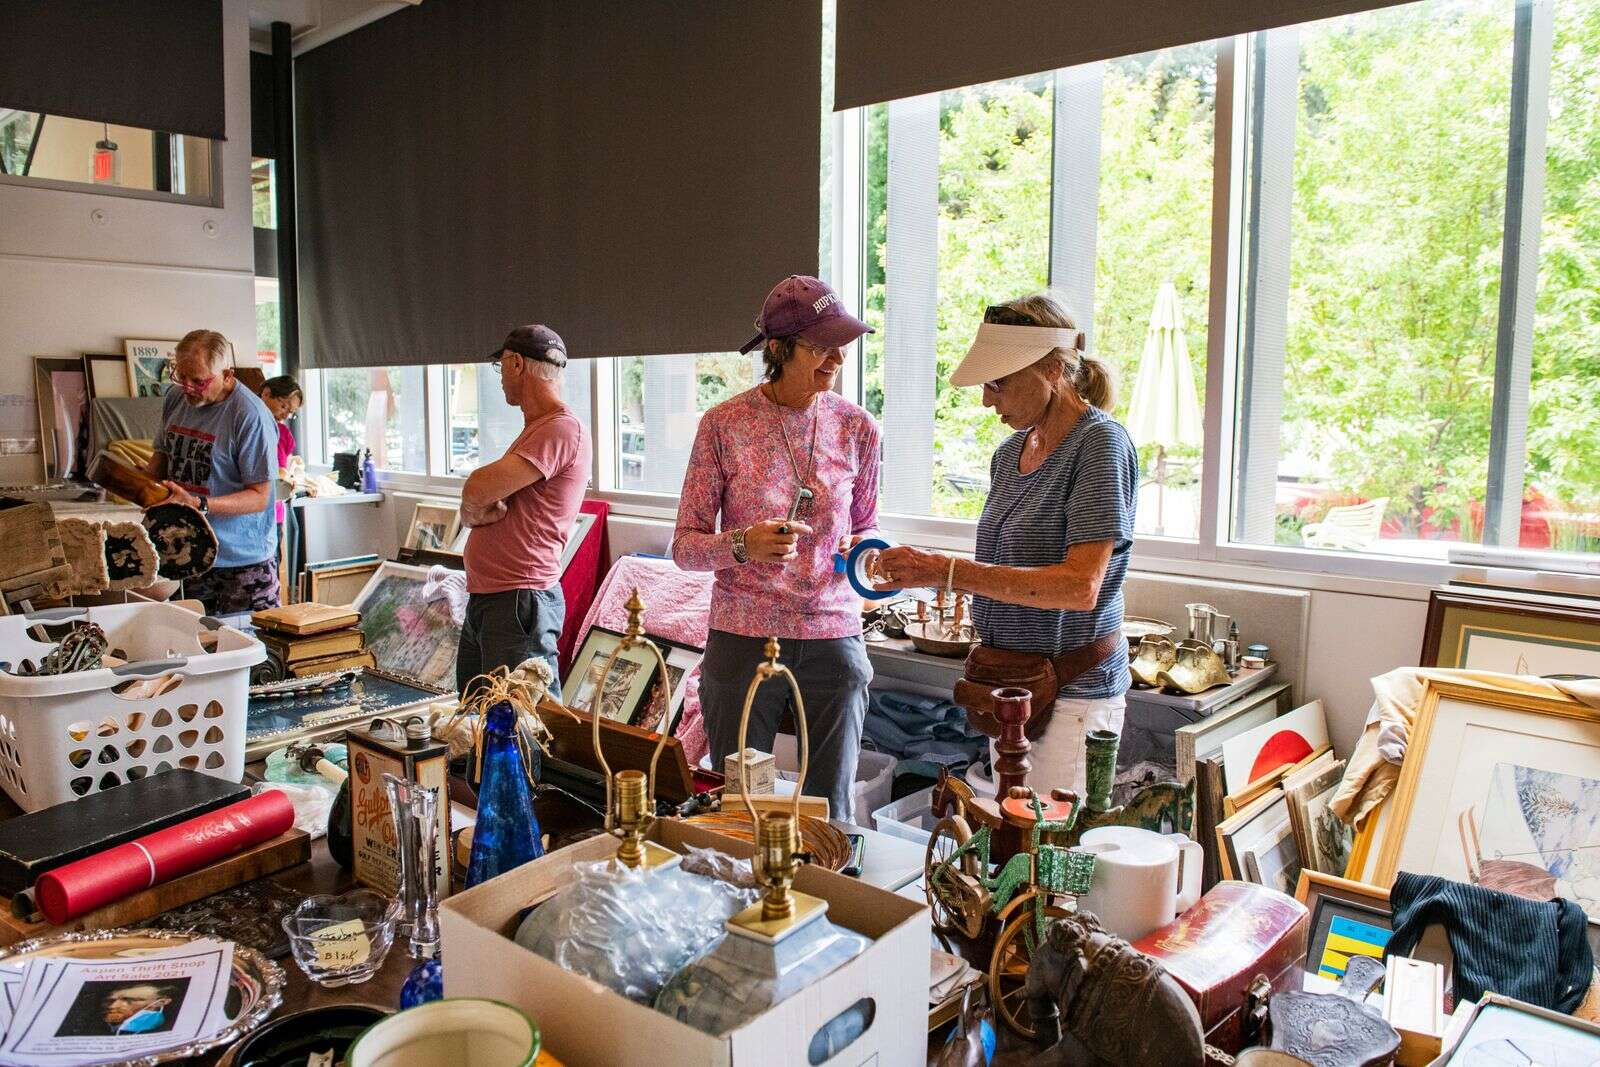 Aspen Thrift Shop's Annual Art Sale Returns With 'Unusual, Interesting, Original' Collection